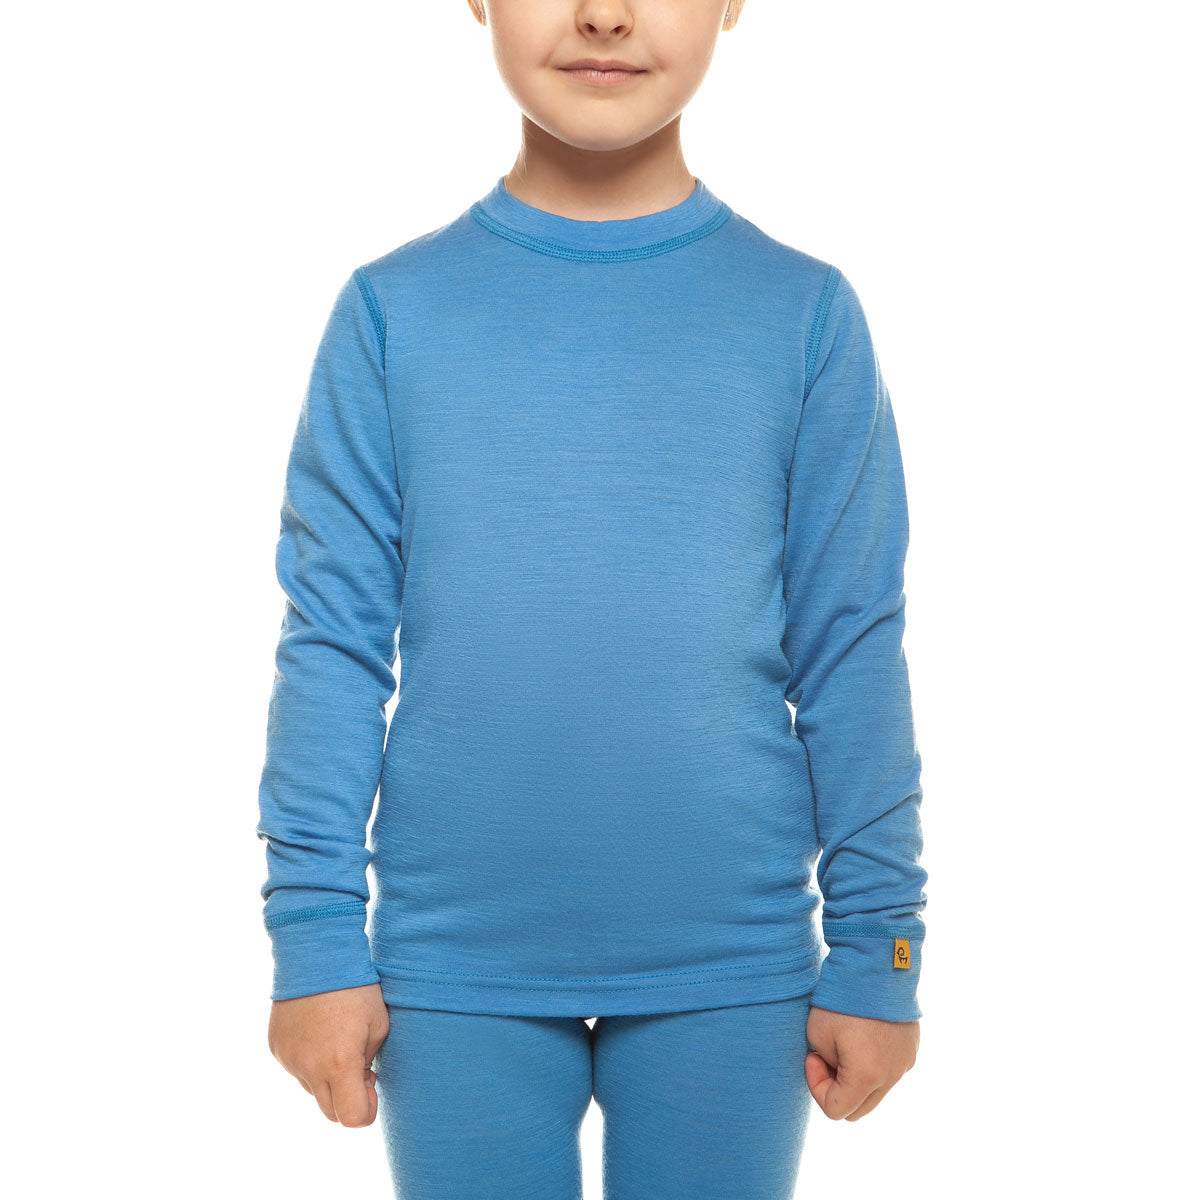 menique Kids' Merino 160 Long Sleeve Crew Light Blue Color